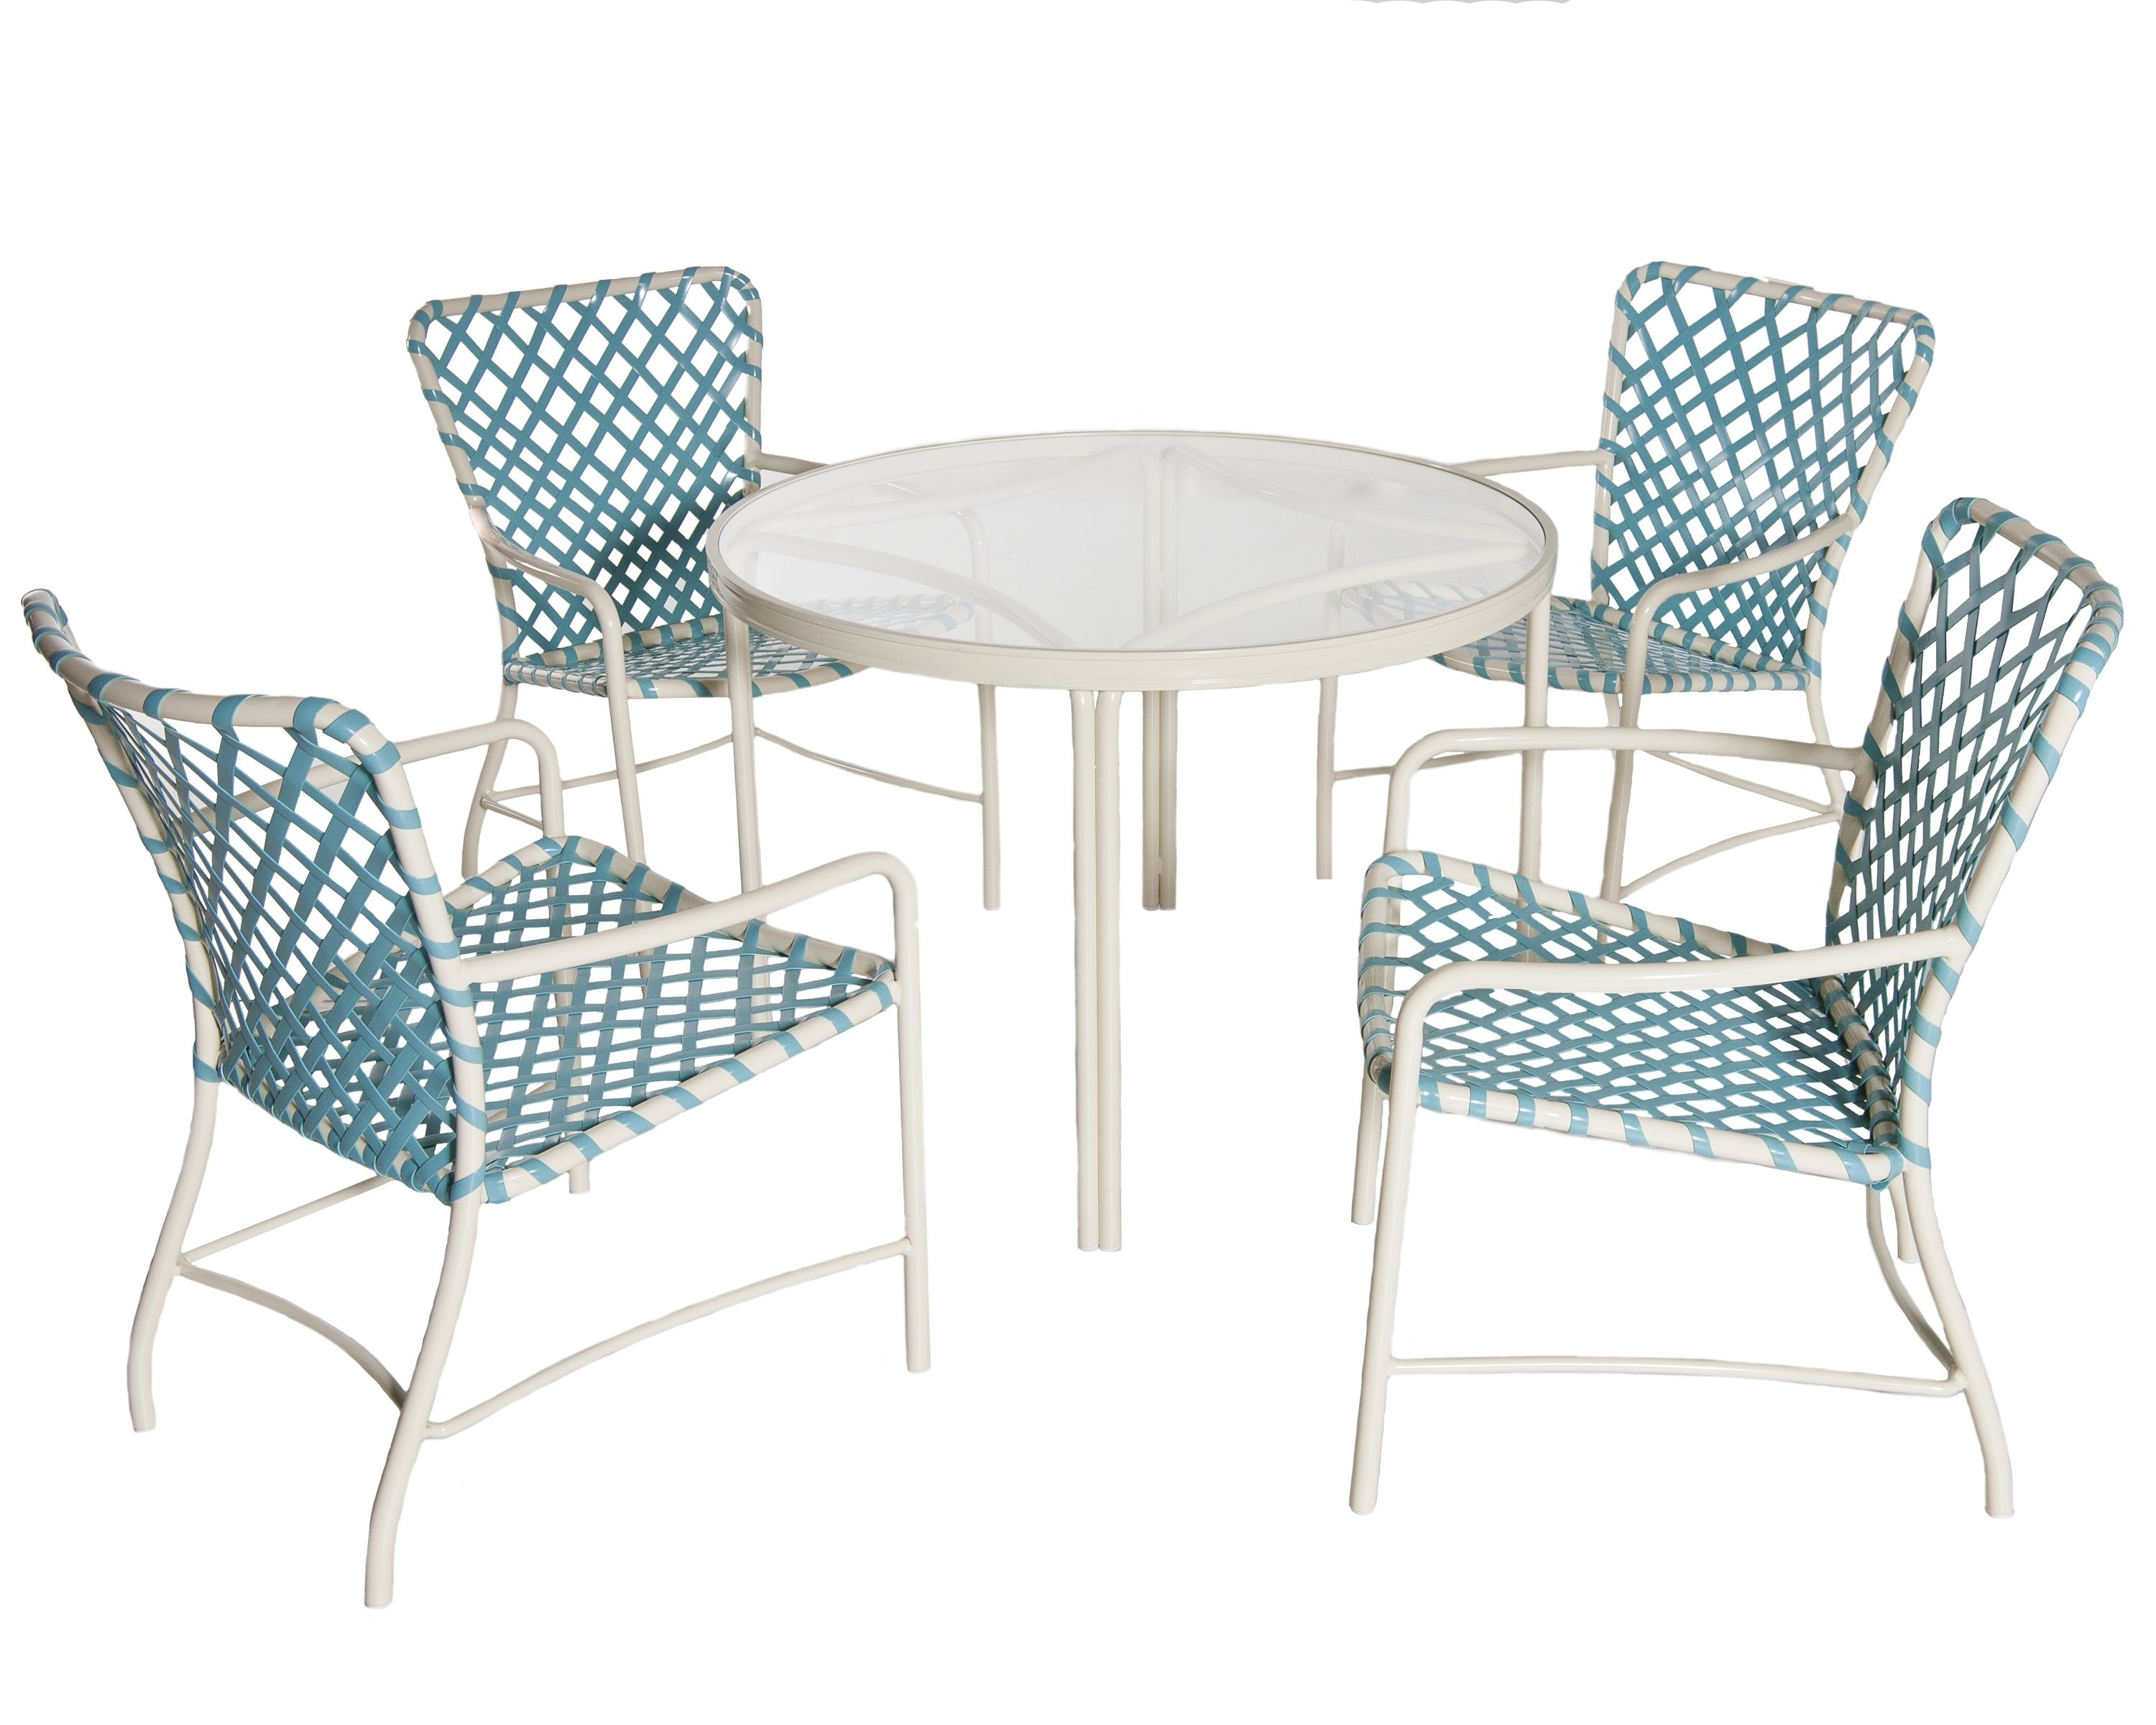 1960S Iconic Outdoor Furniture Tubular Aluminum With Vinyl Within Preferred Brown Jordan Chaises (Gallery 14 of 15)